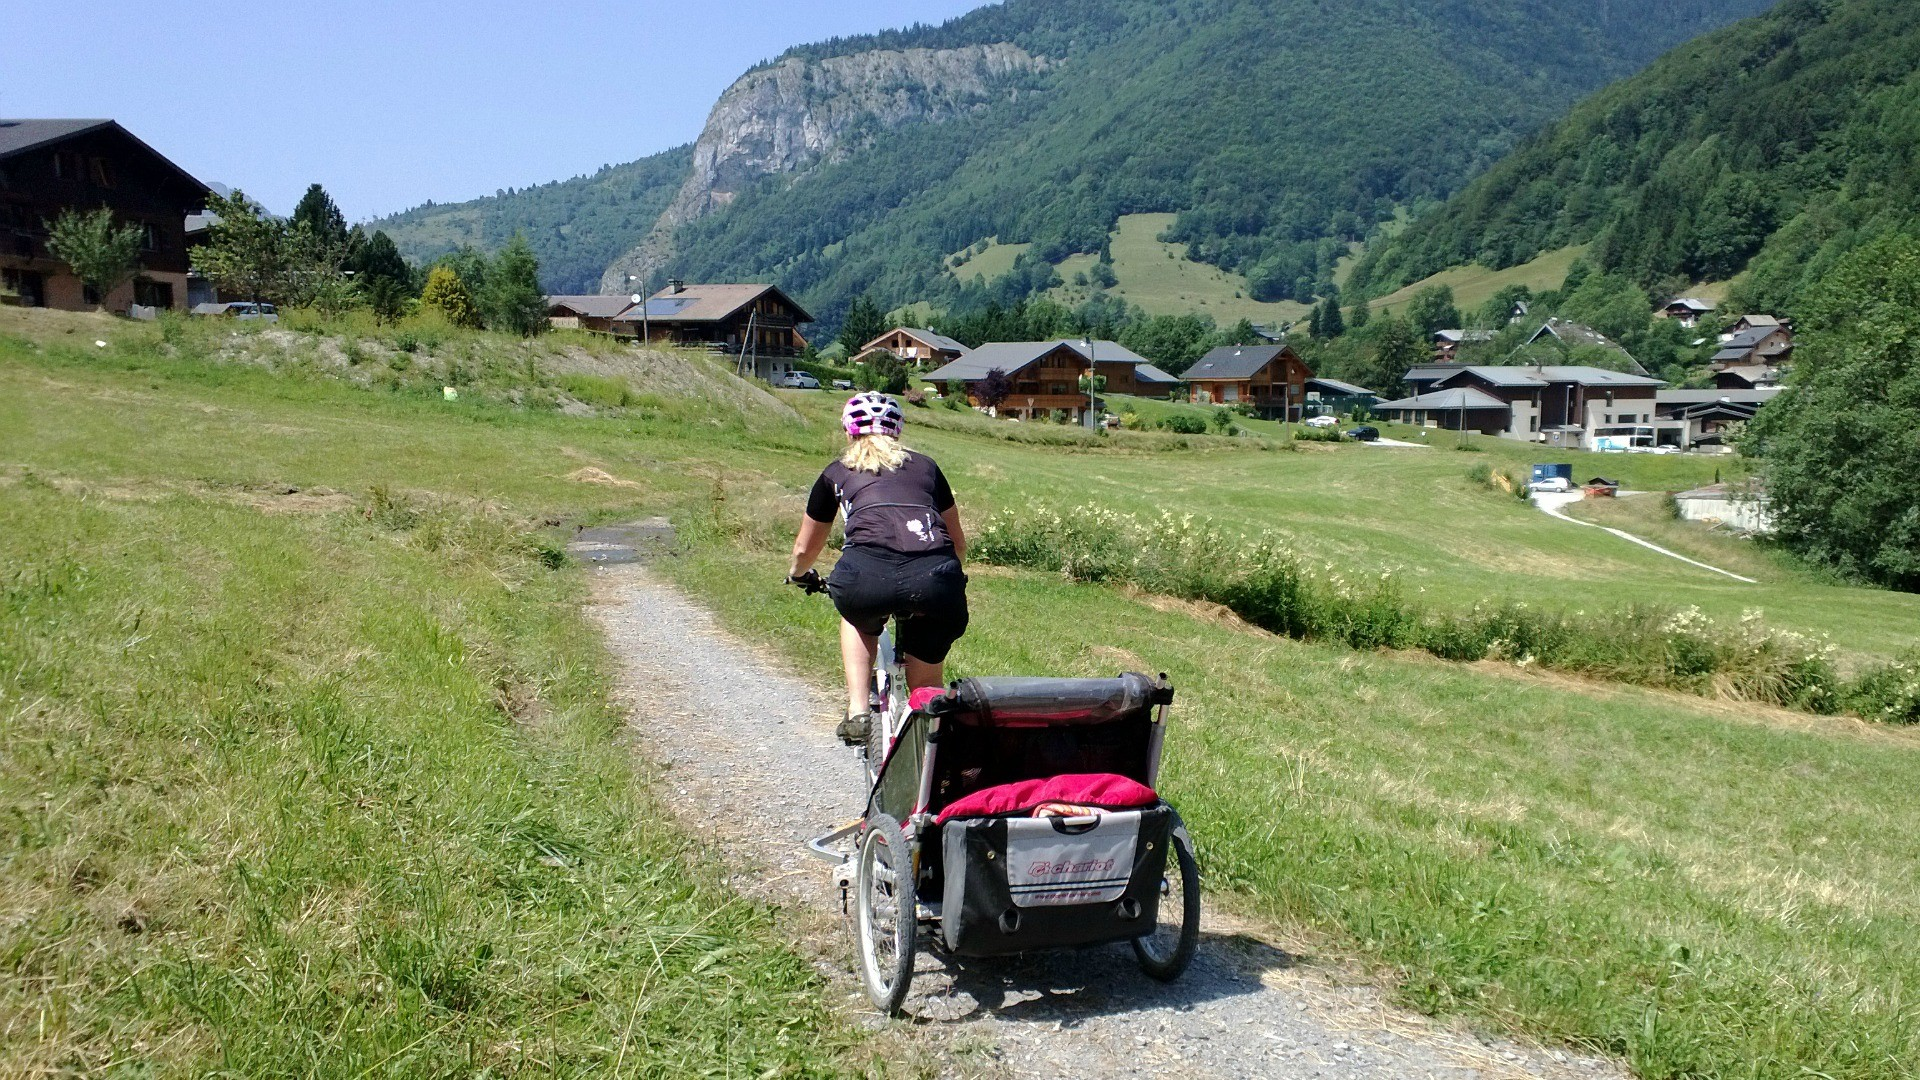 Mountain bike holidays are still a firm fixture on the family holiday calendar